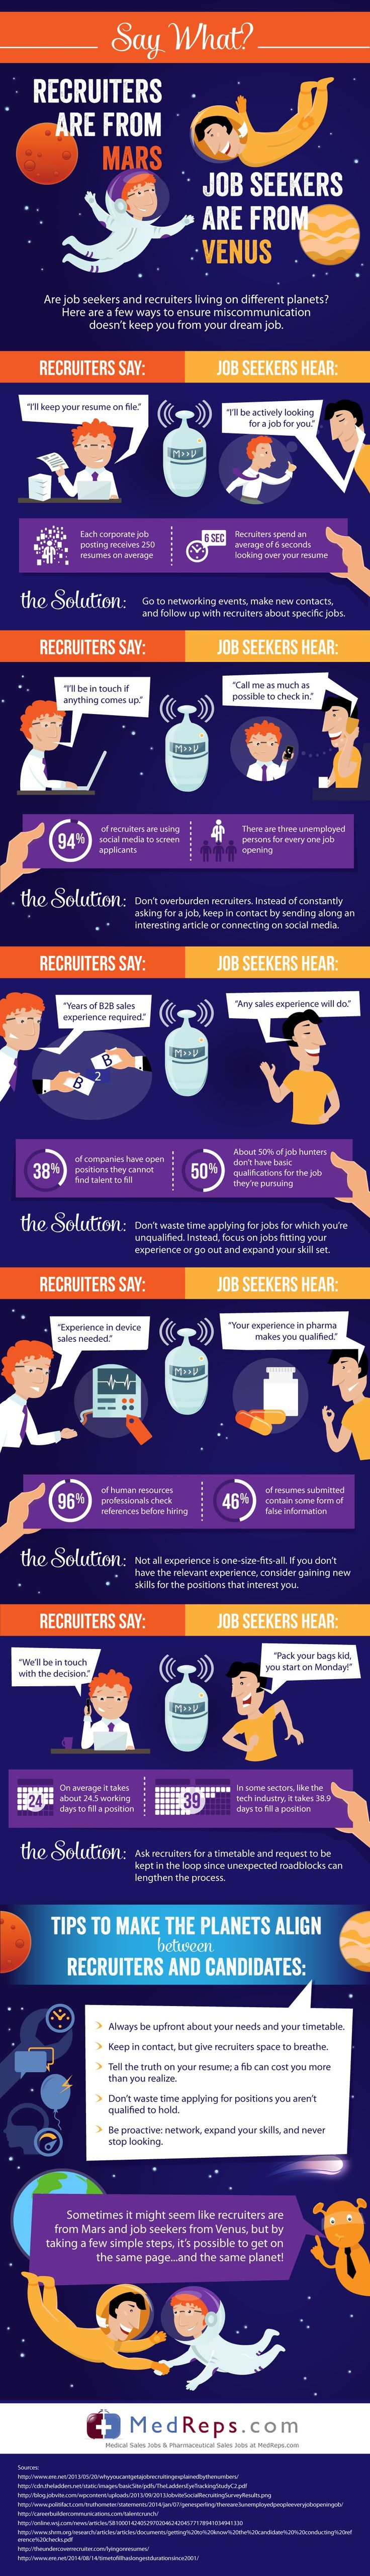 best ideas about job seekers job search tips recruiters are from mars job seekers are from venus